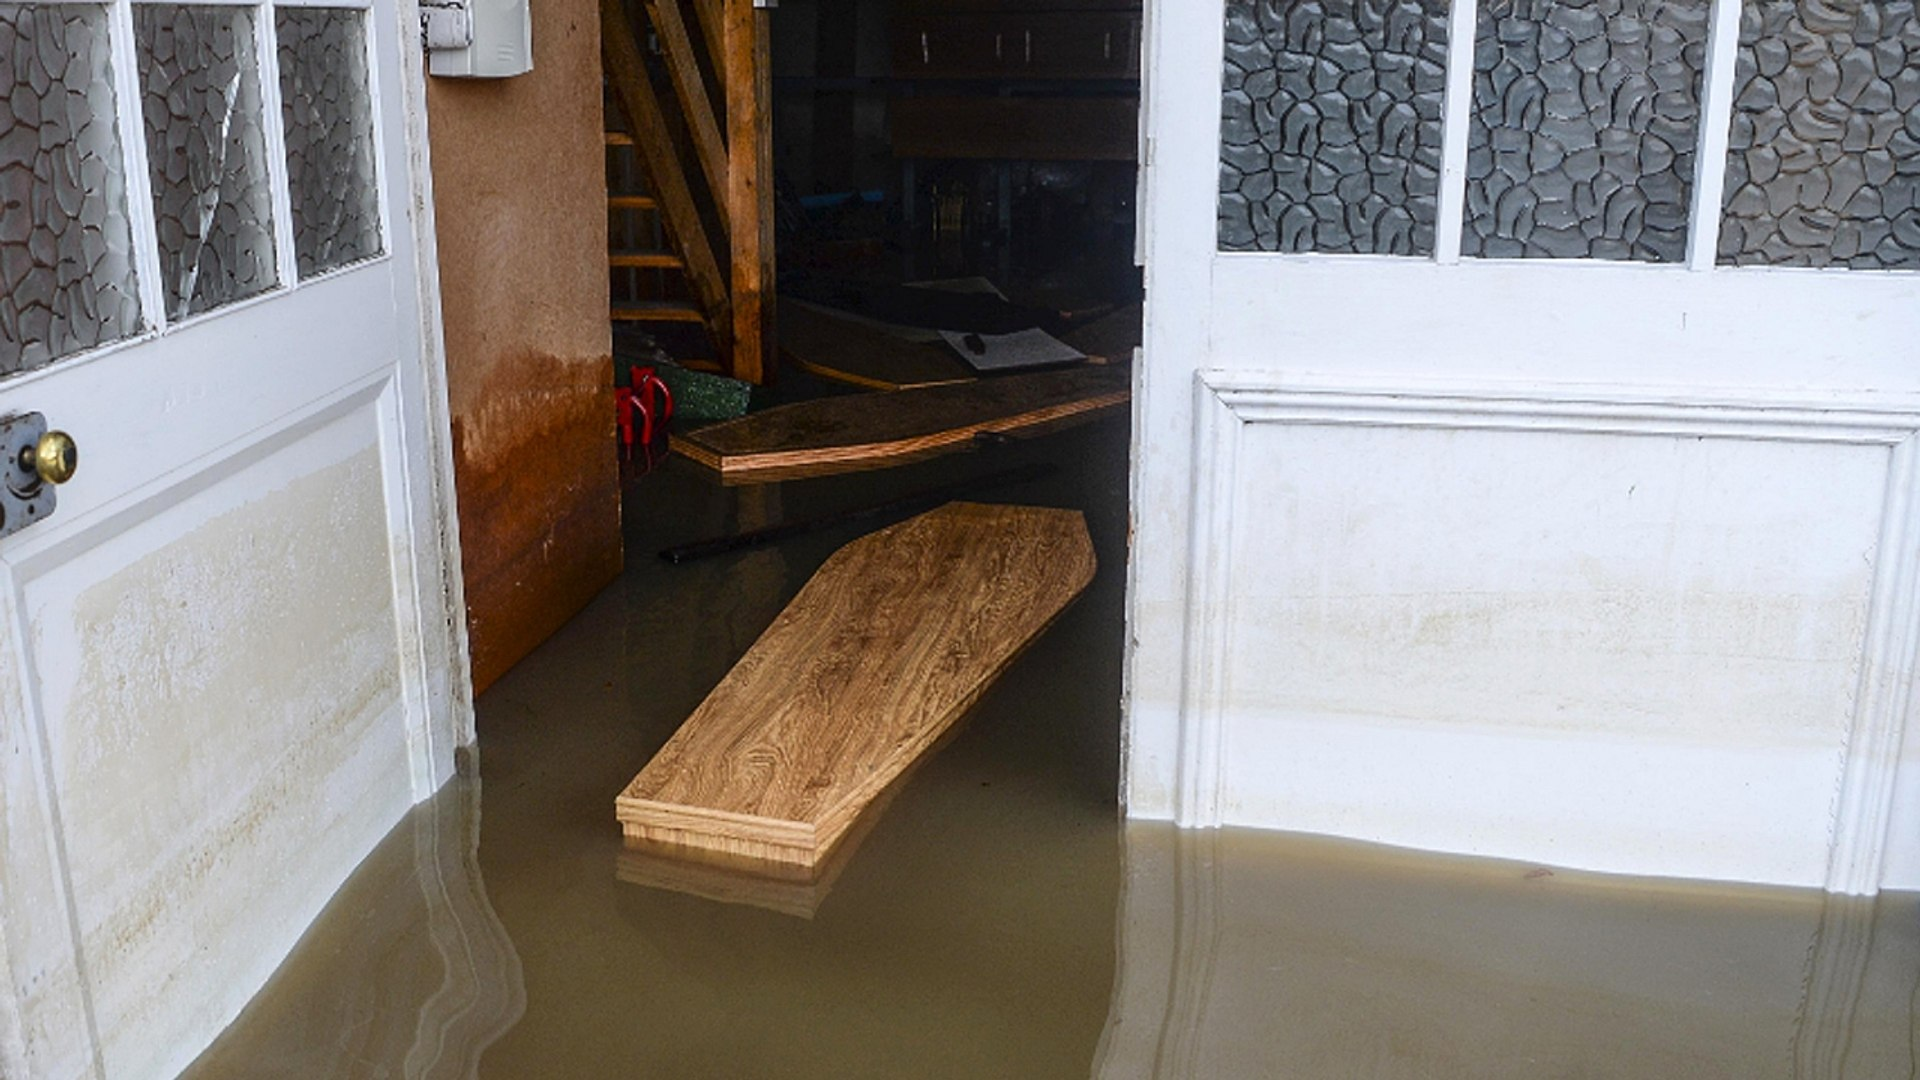 Floodwaters Send Coffins Afloat At U.K. Funeral Home